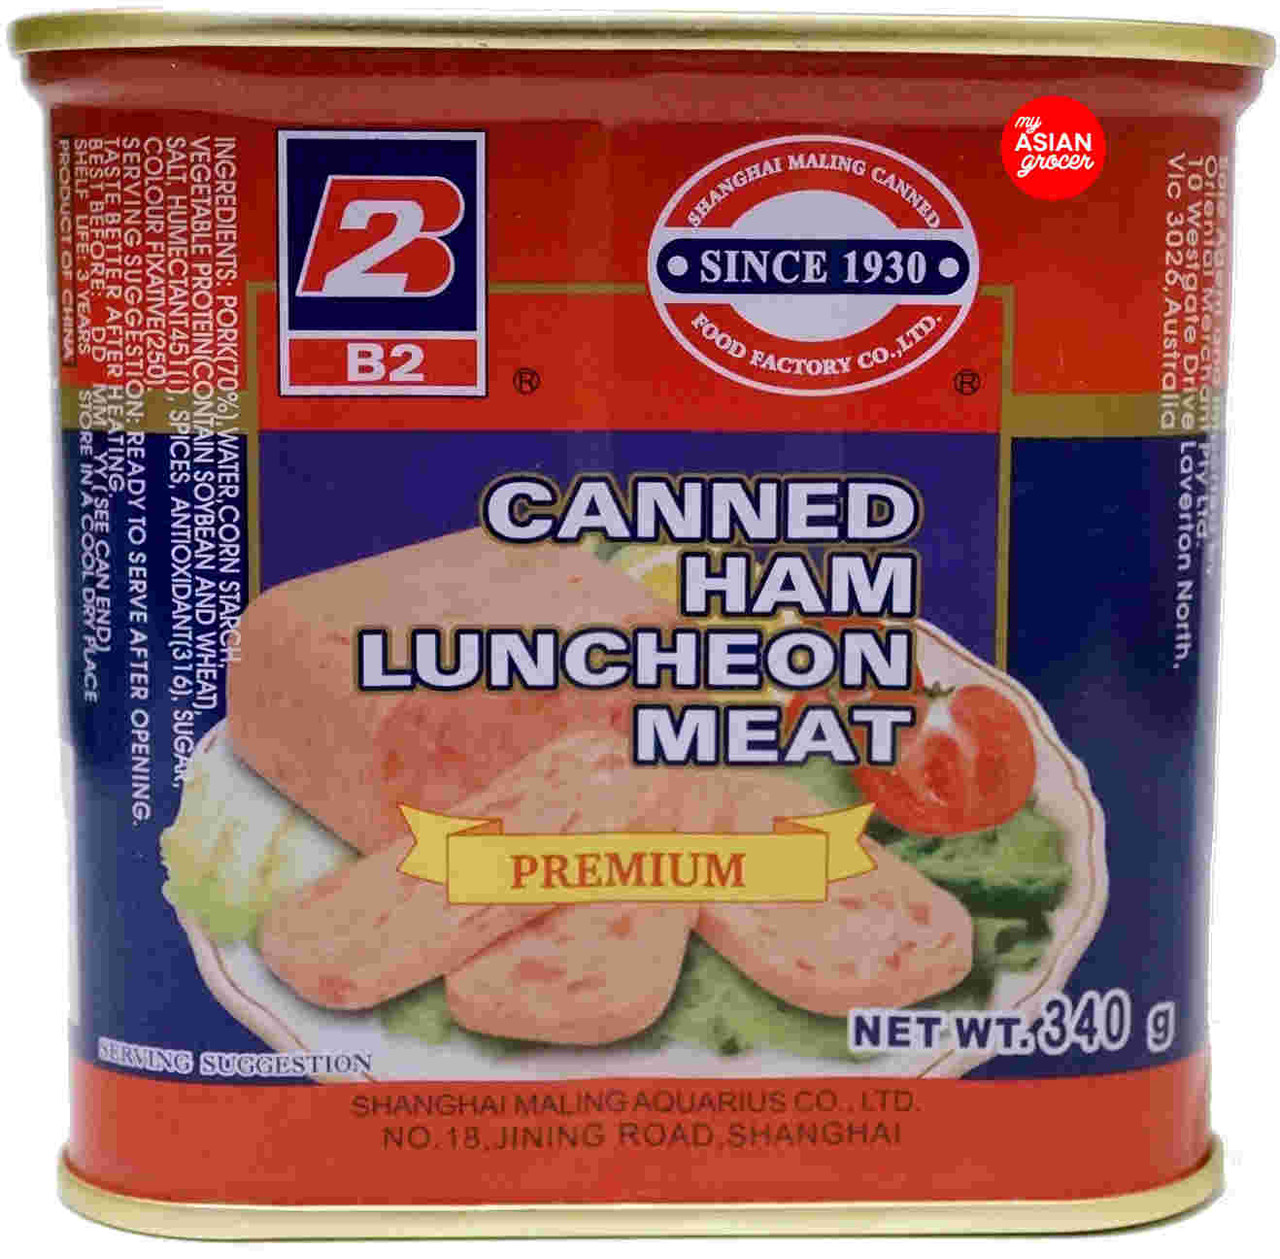 B2 Canned Ham Luncheon Meat Premium 340g